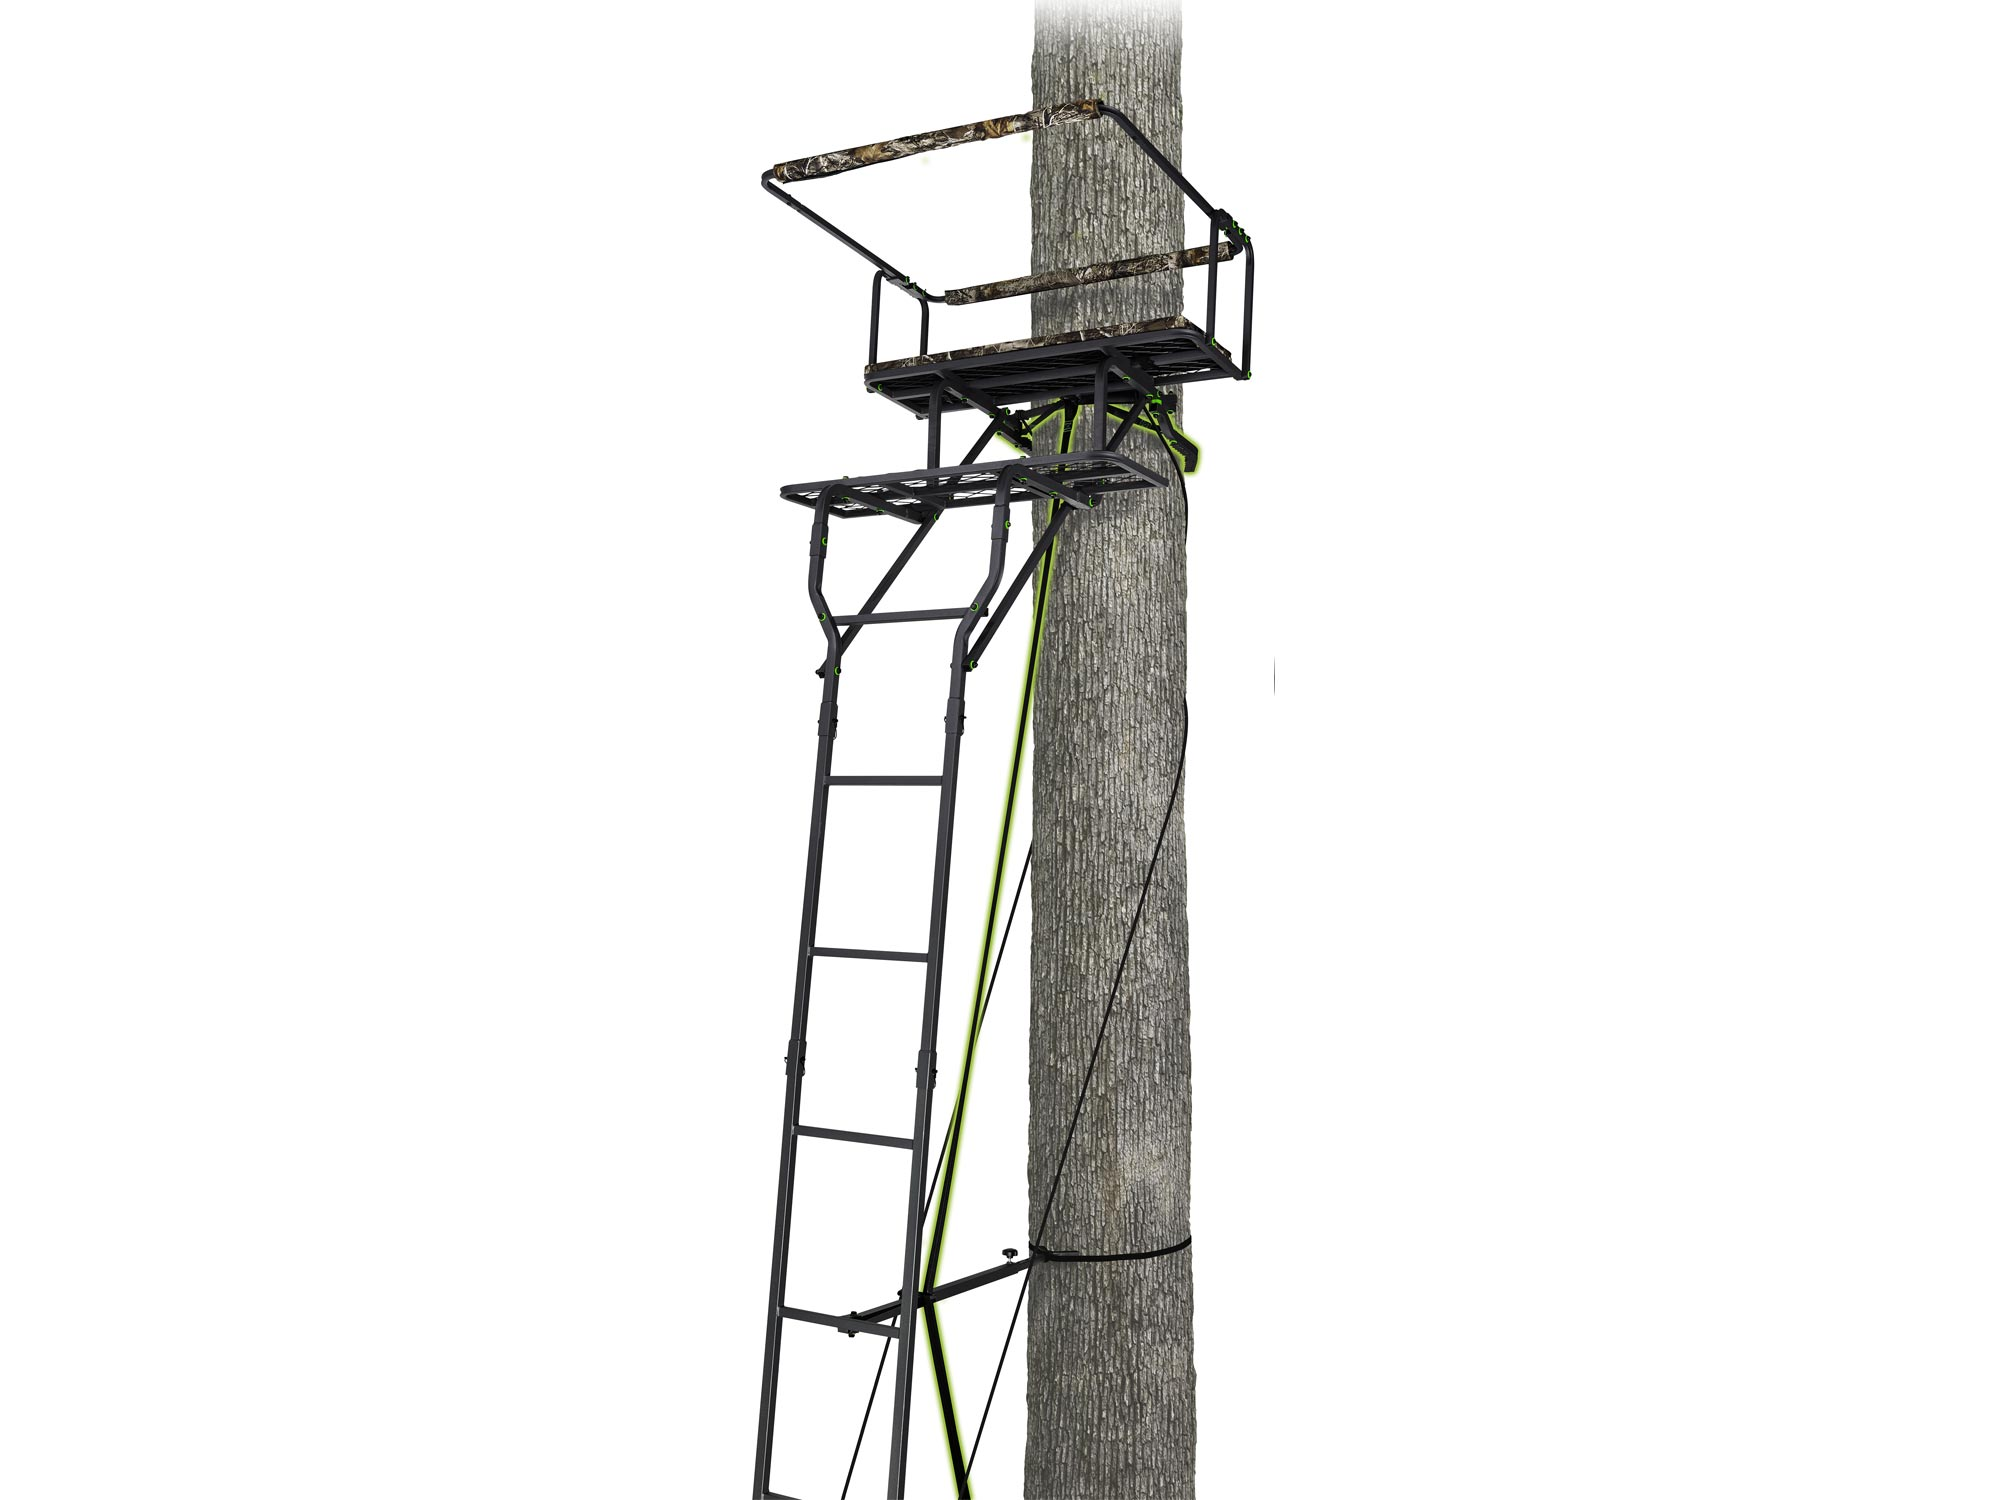 Realtree Two-man treestand